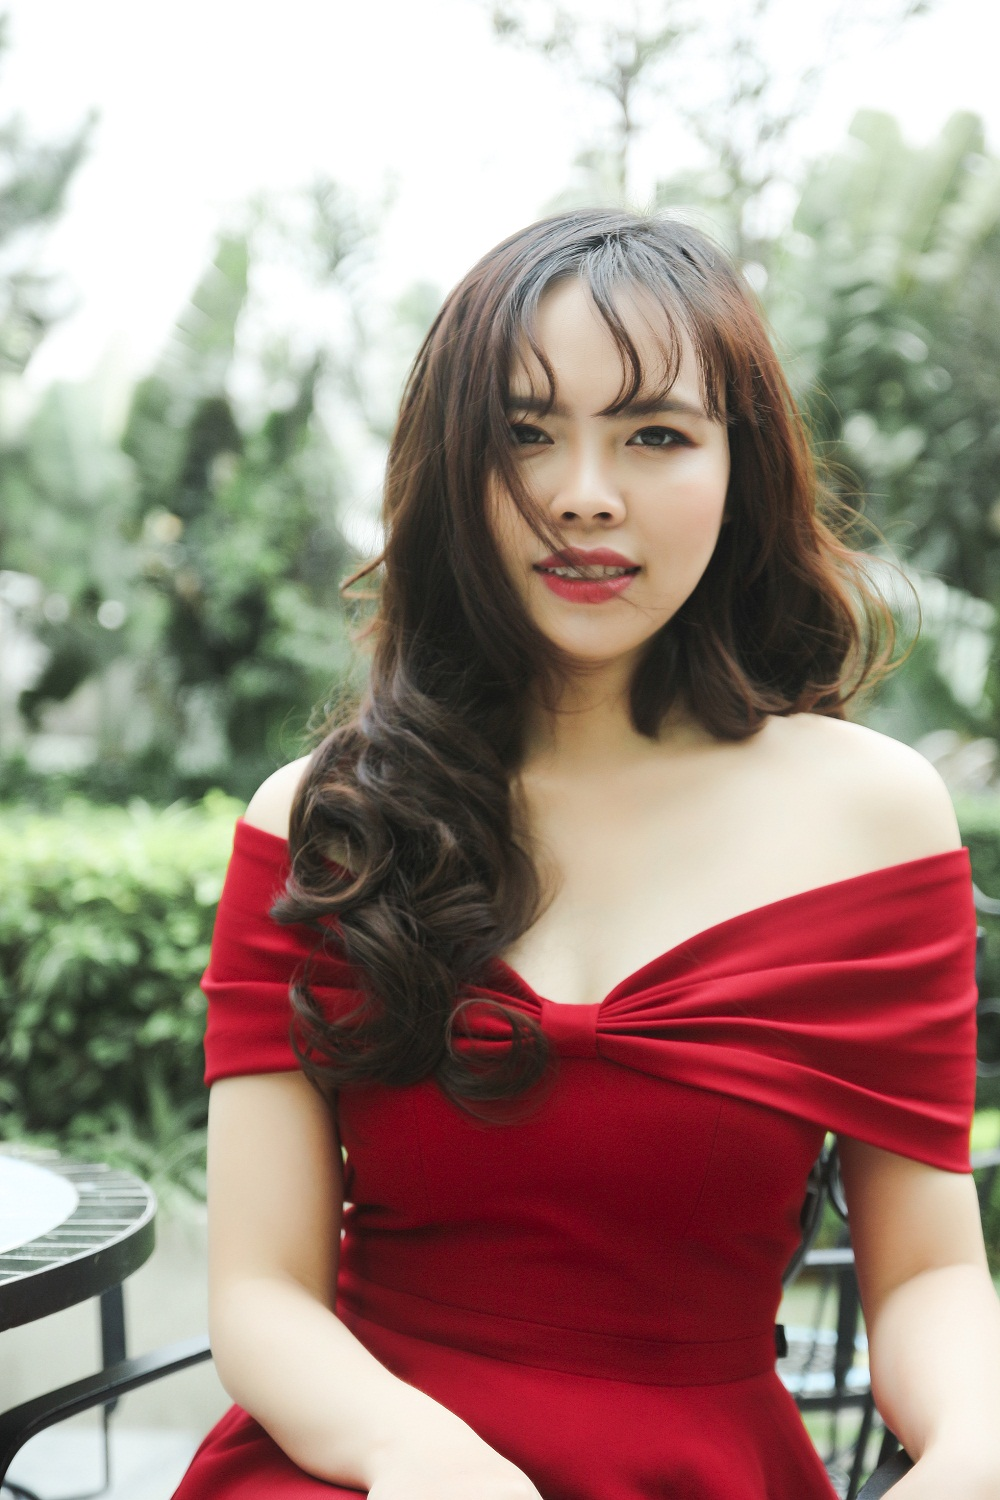 /UserFiles/miss/miss2018/6. Vuthiluong - S9/VU THI LUONG_ANH CHAN DUNG 2.jpg